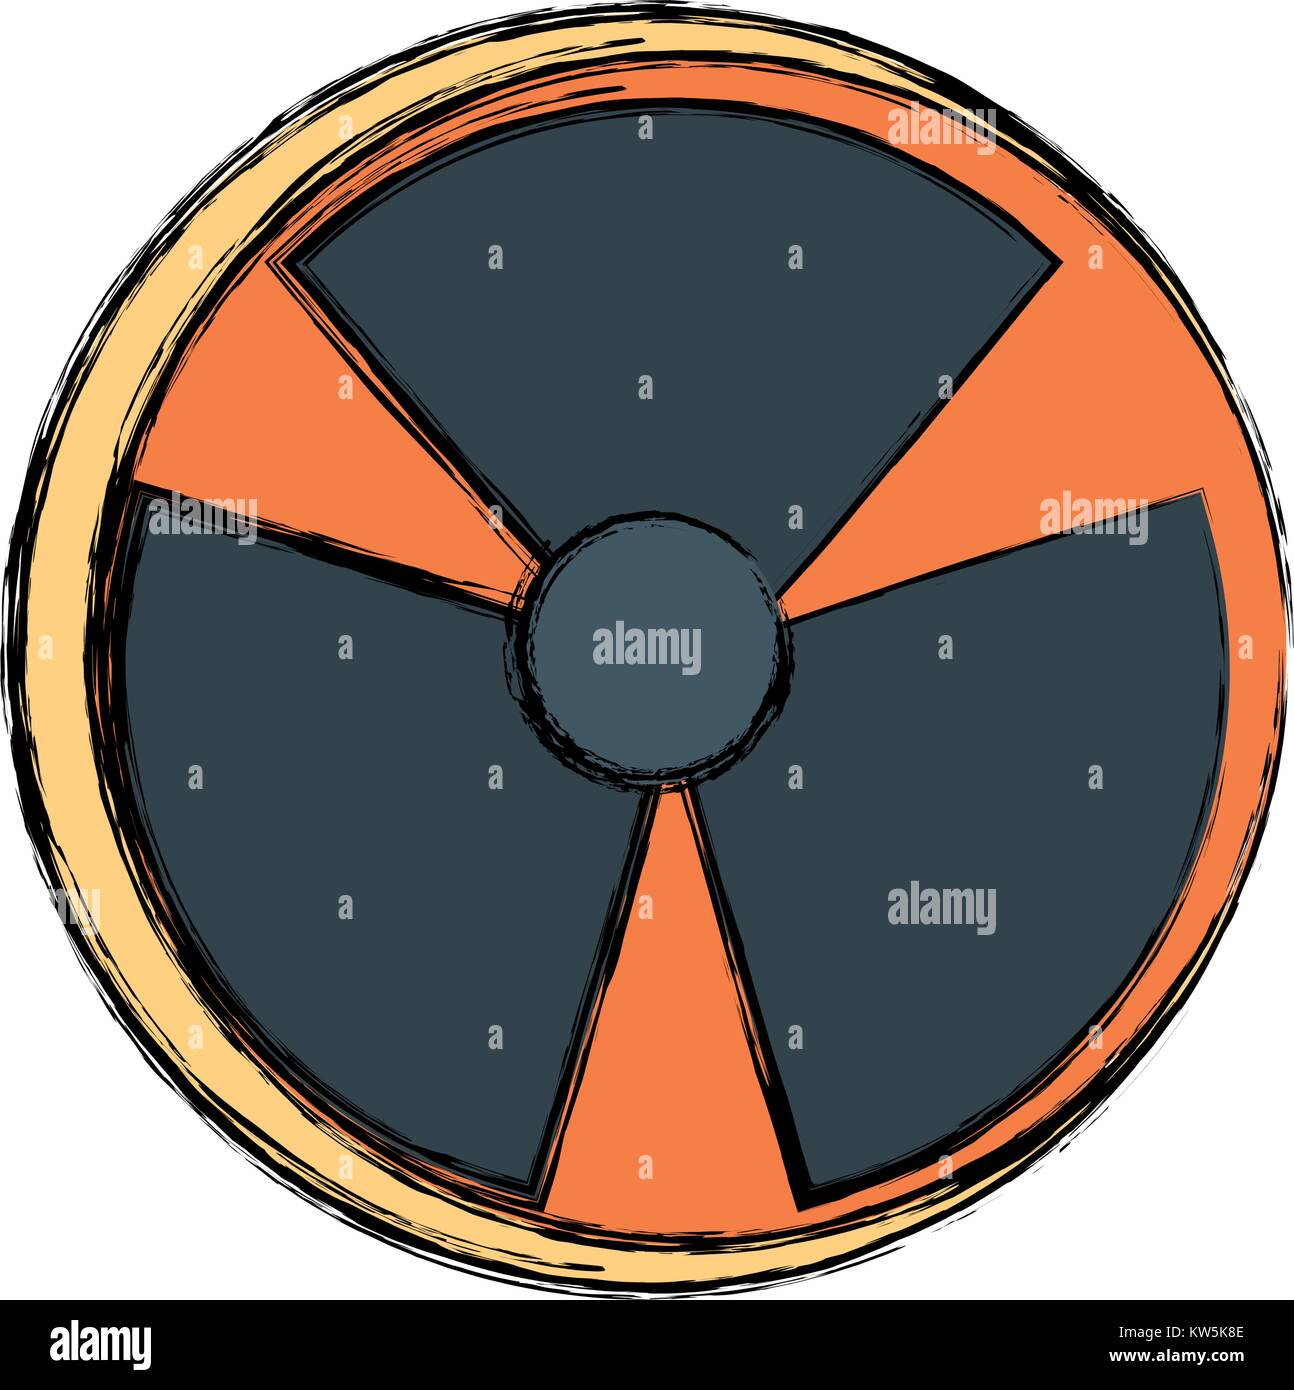 Nuclear danger symbol Stock Vector